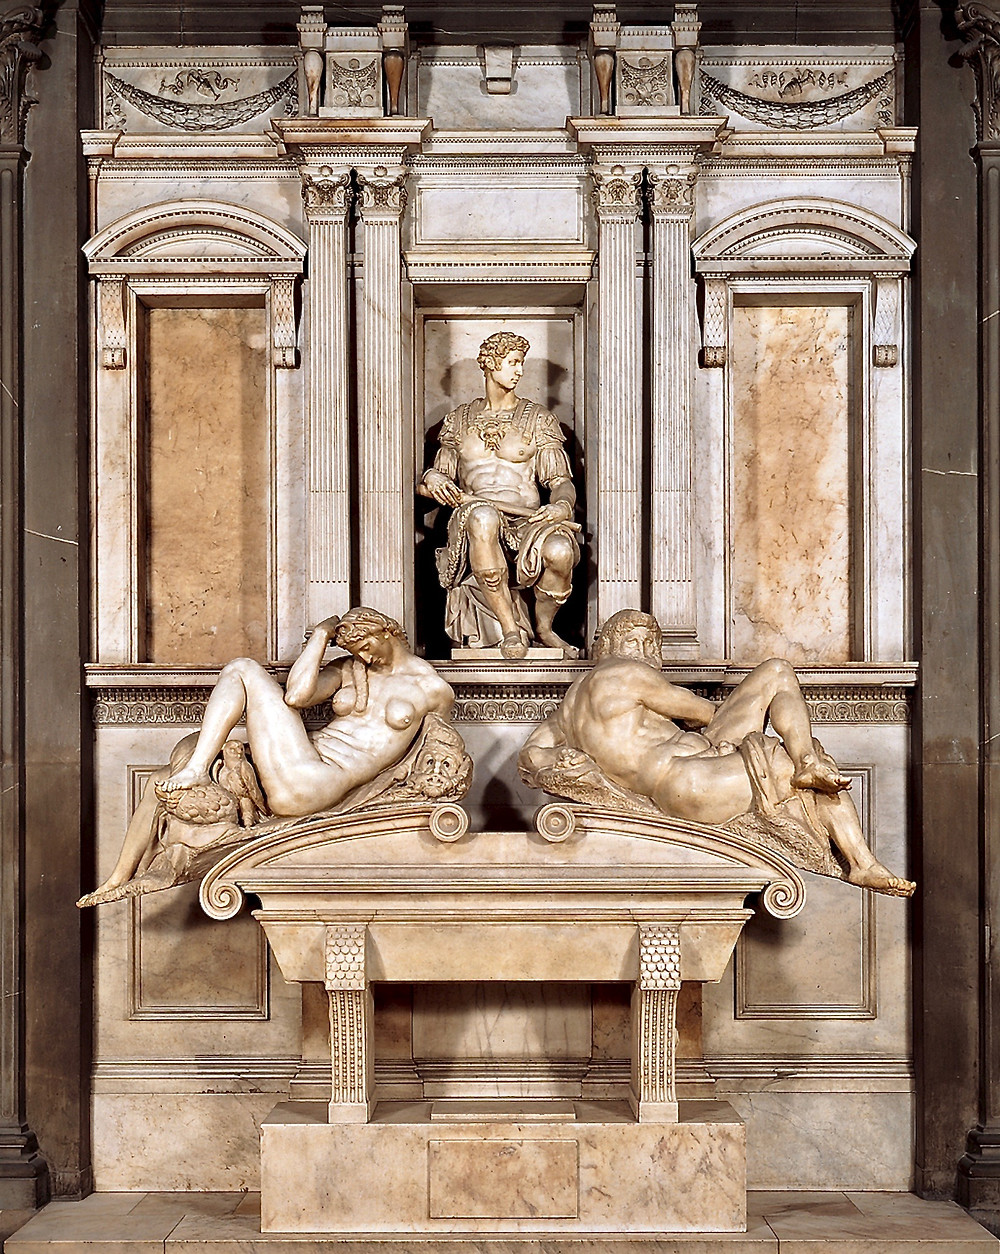 Giuliano de Medici's tomb in the Medici Chapel